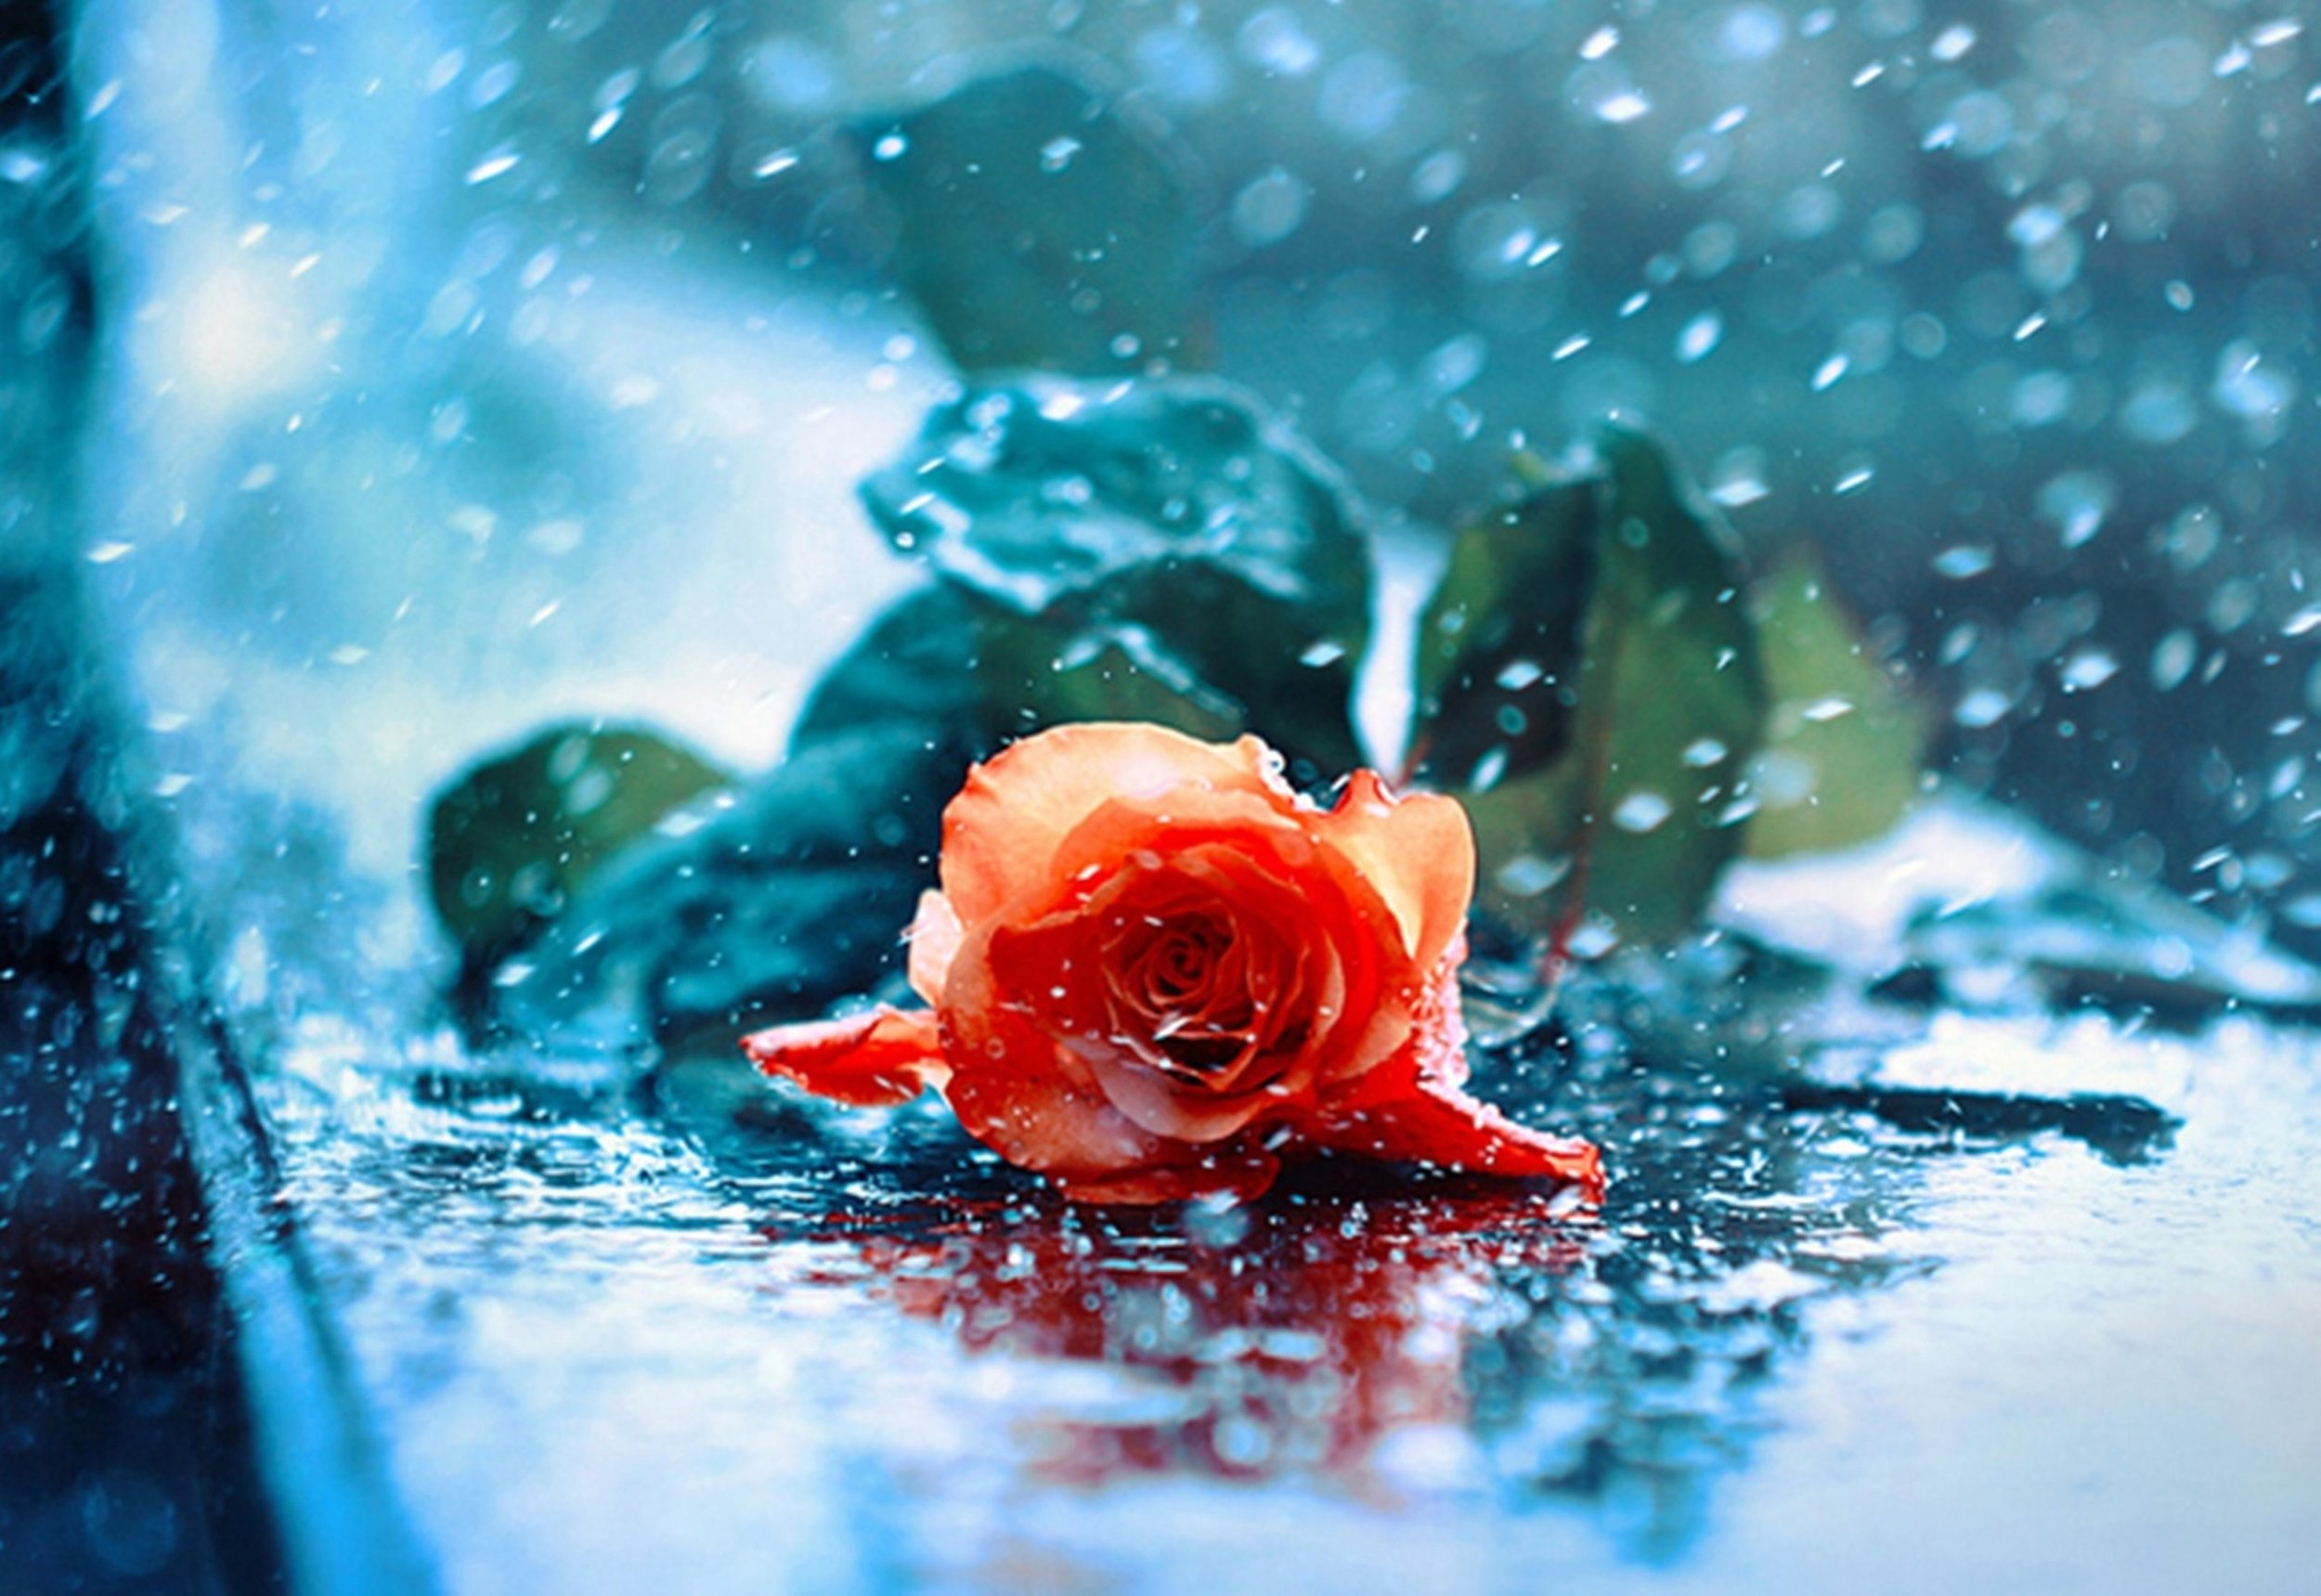 rose-with-water-drops-wallpaper-3.jpg